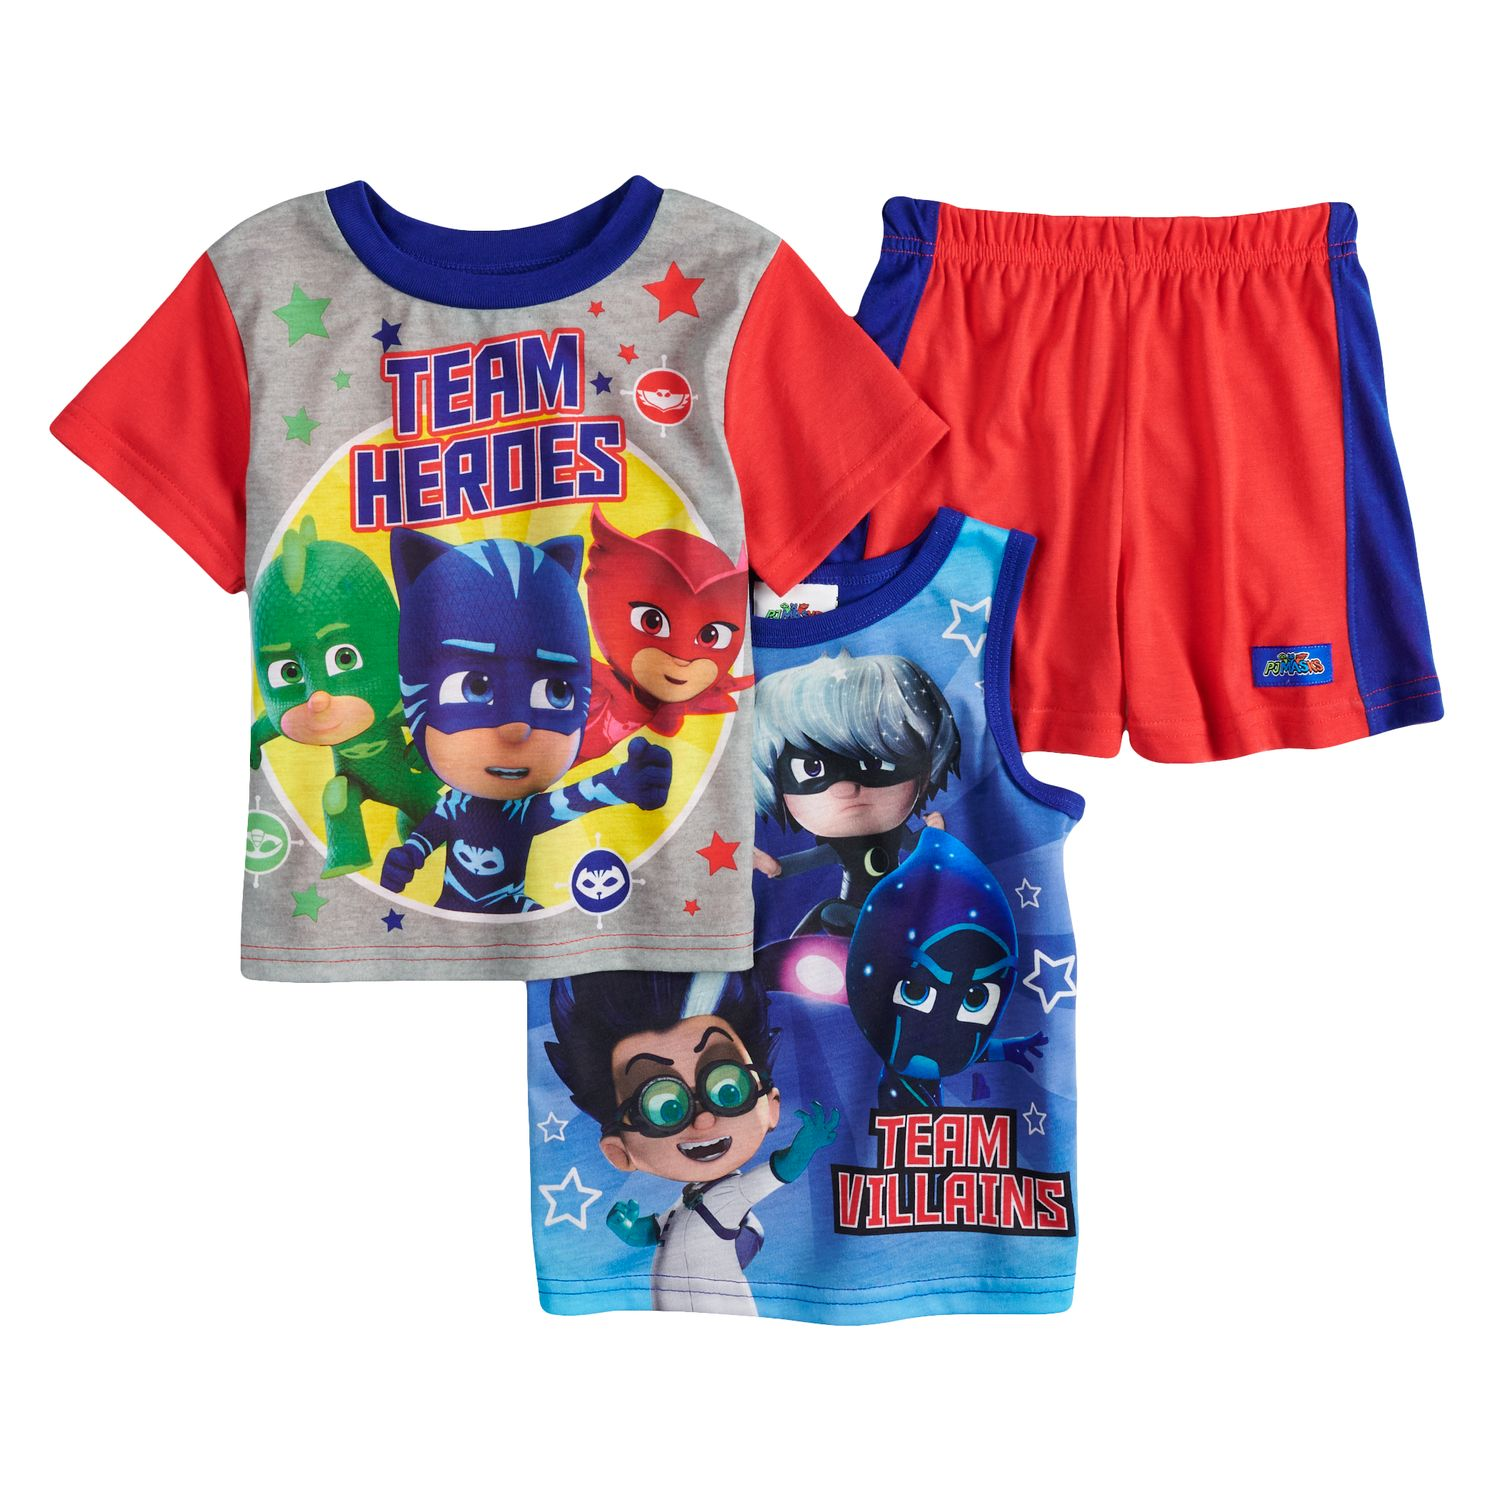 Toddler Boy PJ Masks Catboy, Gekko, Owlet U0026 Villains Tops U0026 Shorts Pajama  Set